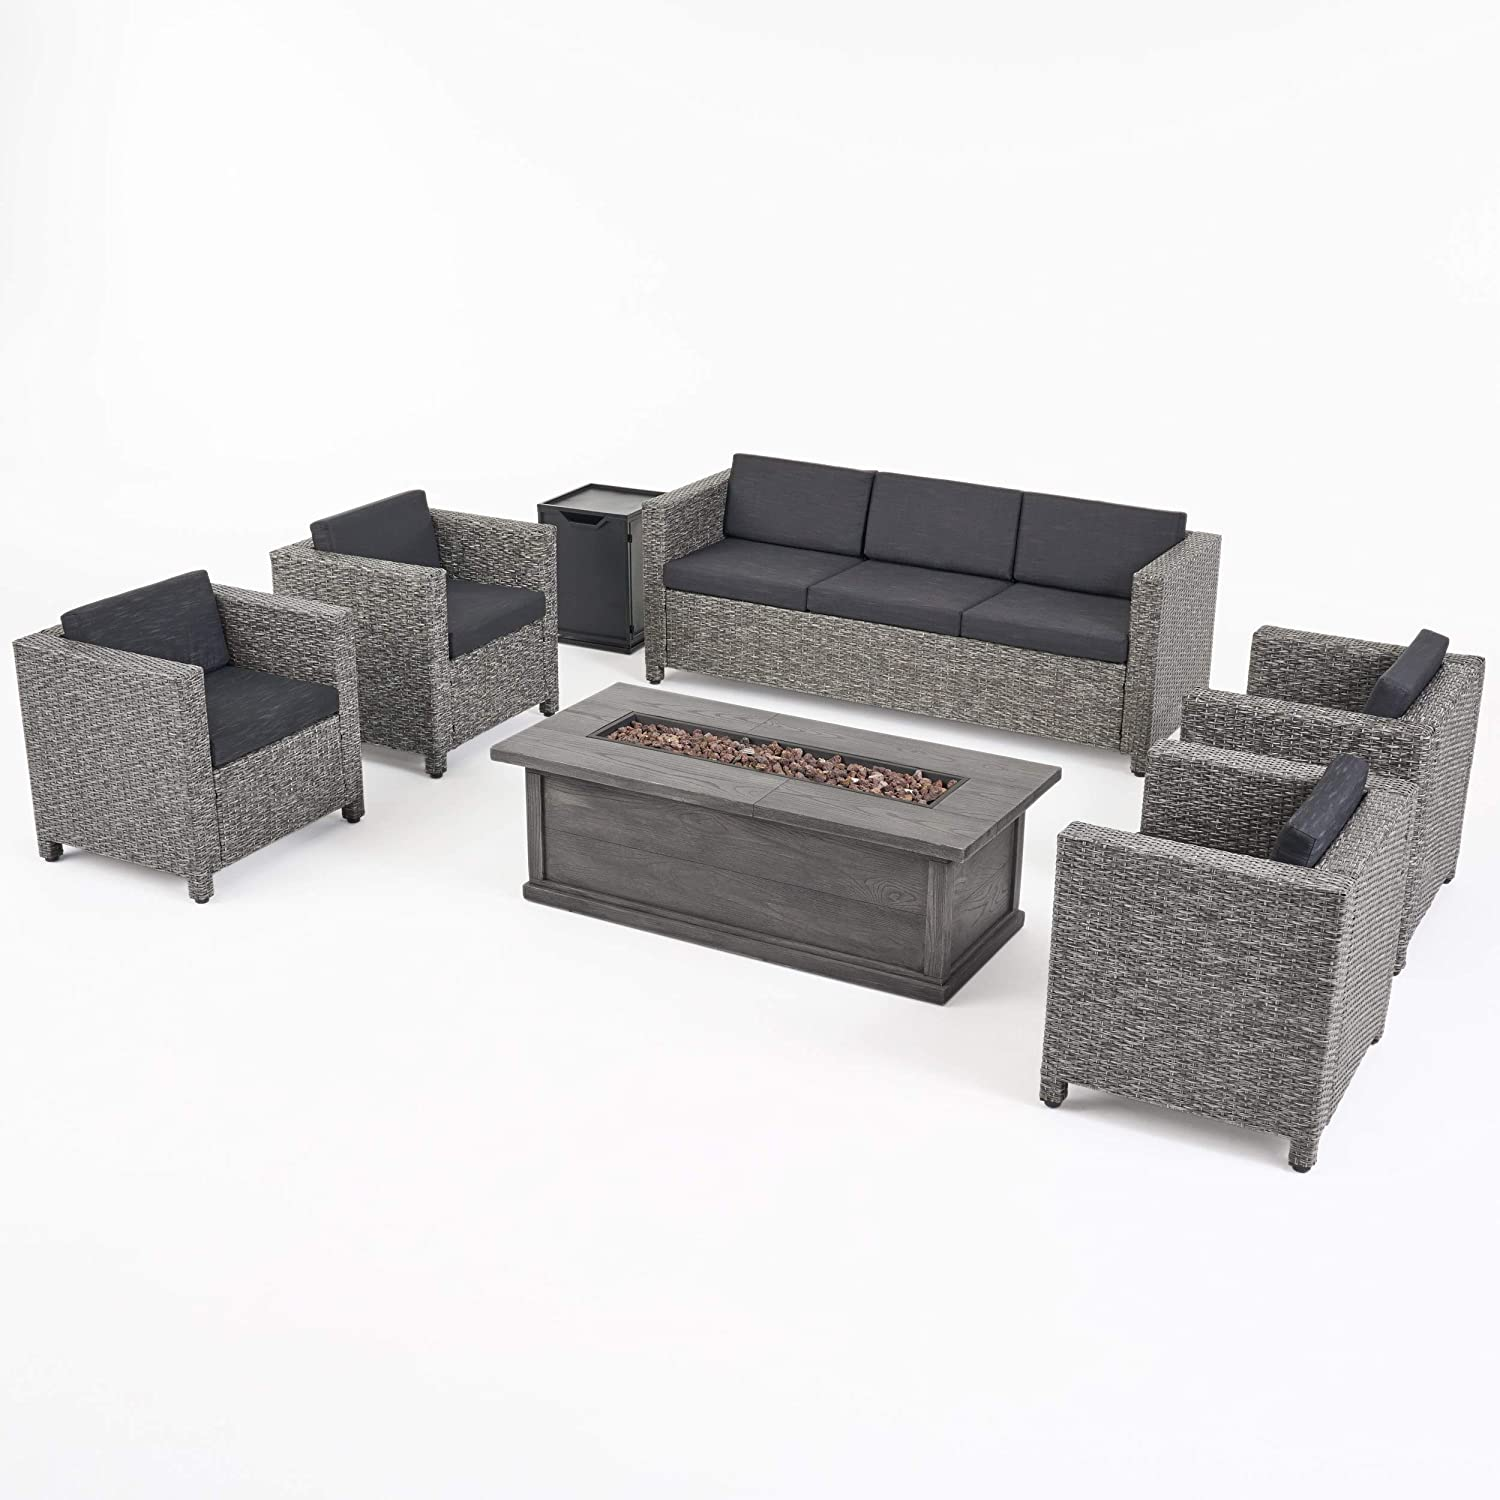 Great Deal Furniture Simona Outdoor 7 Seater Wicker Chat Set with Fire Pit, Mix Black and Dark Gray